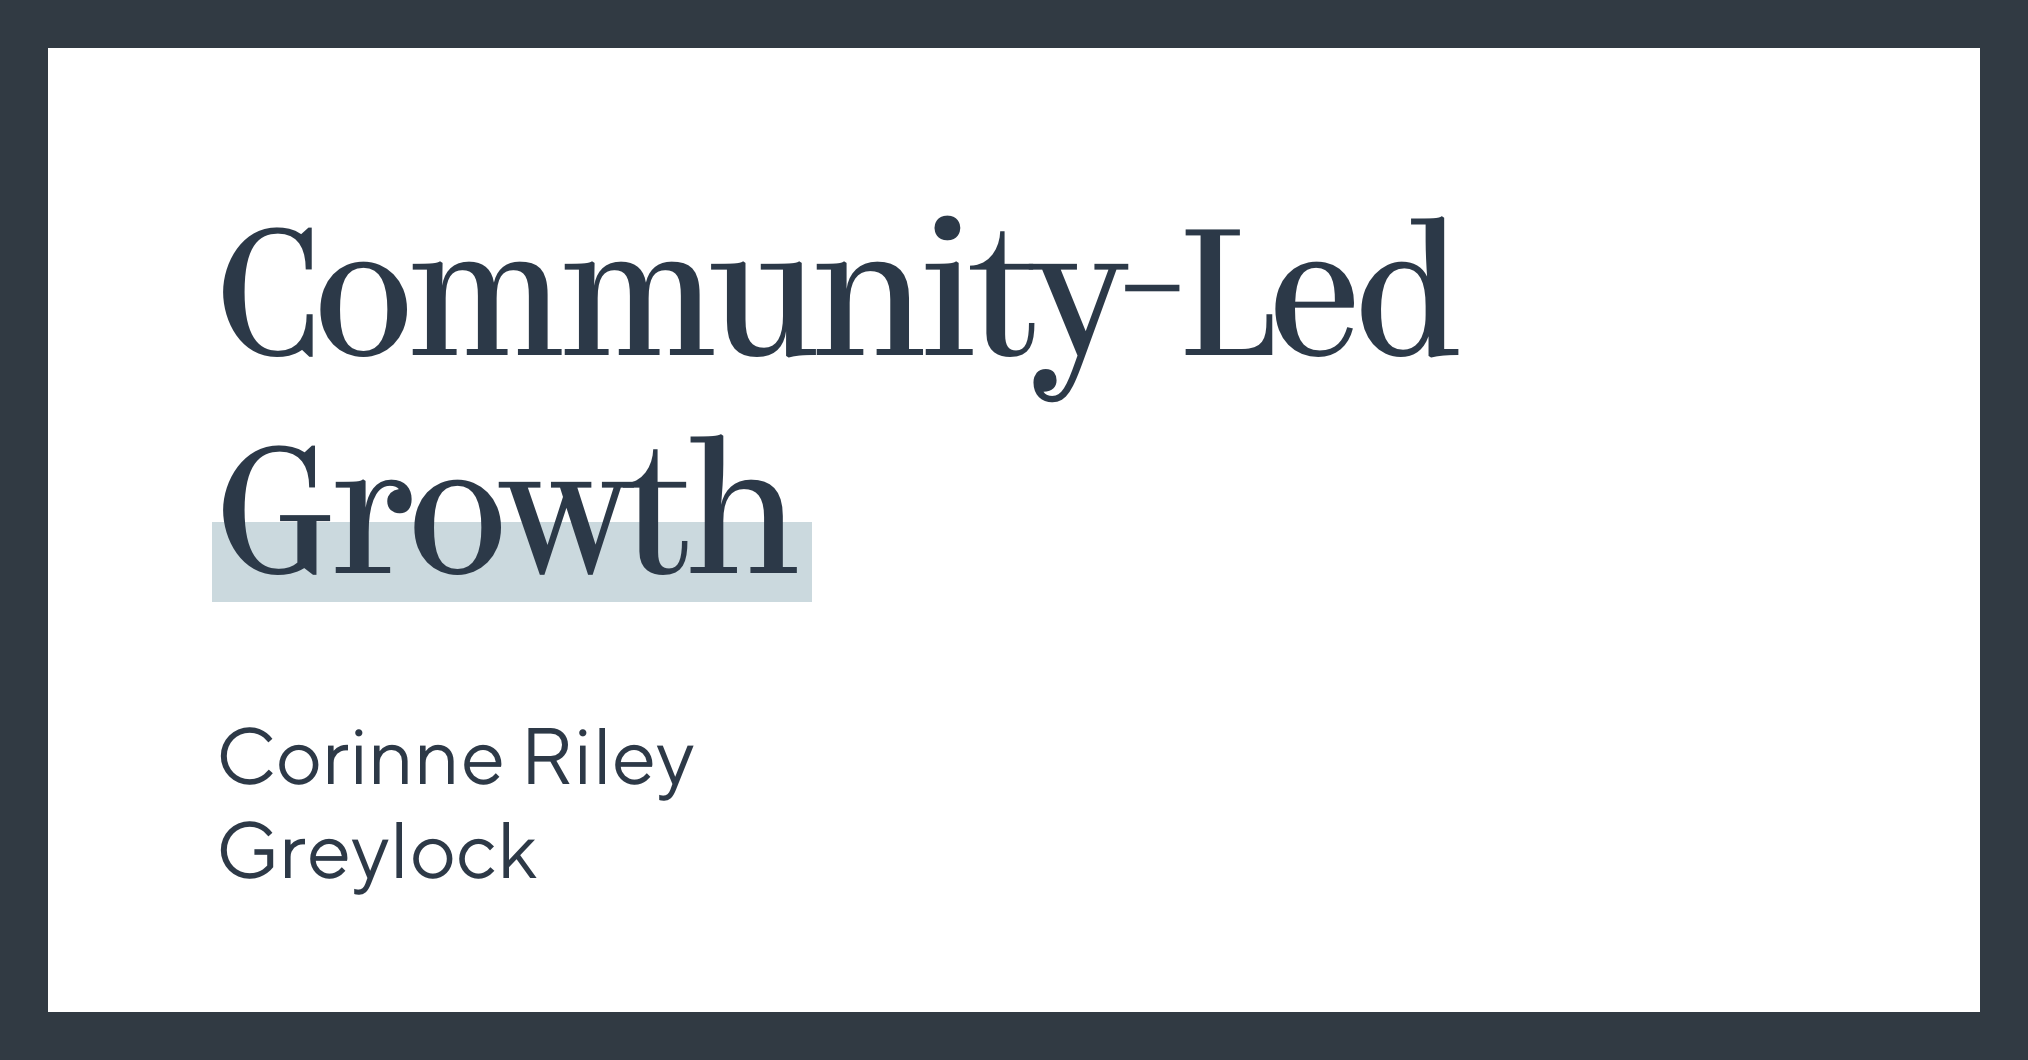 Community-Led Growth